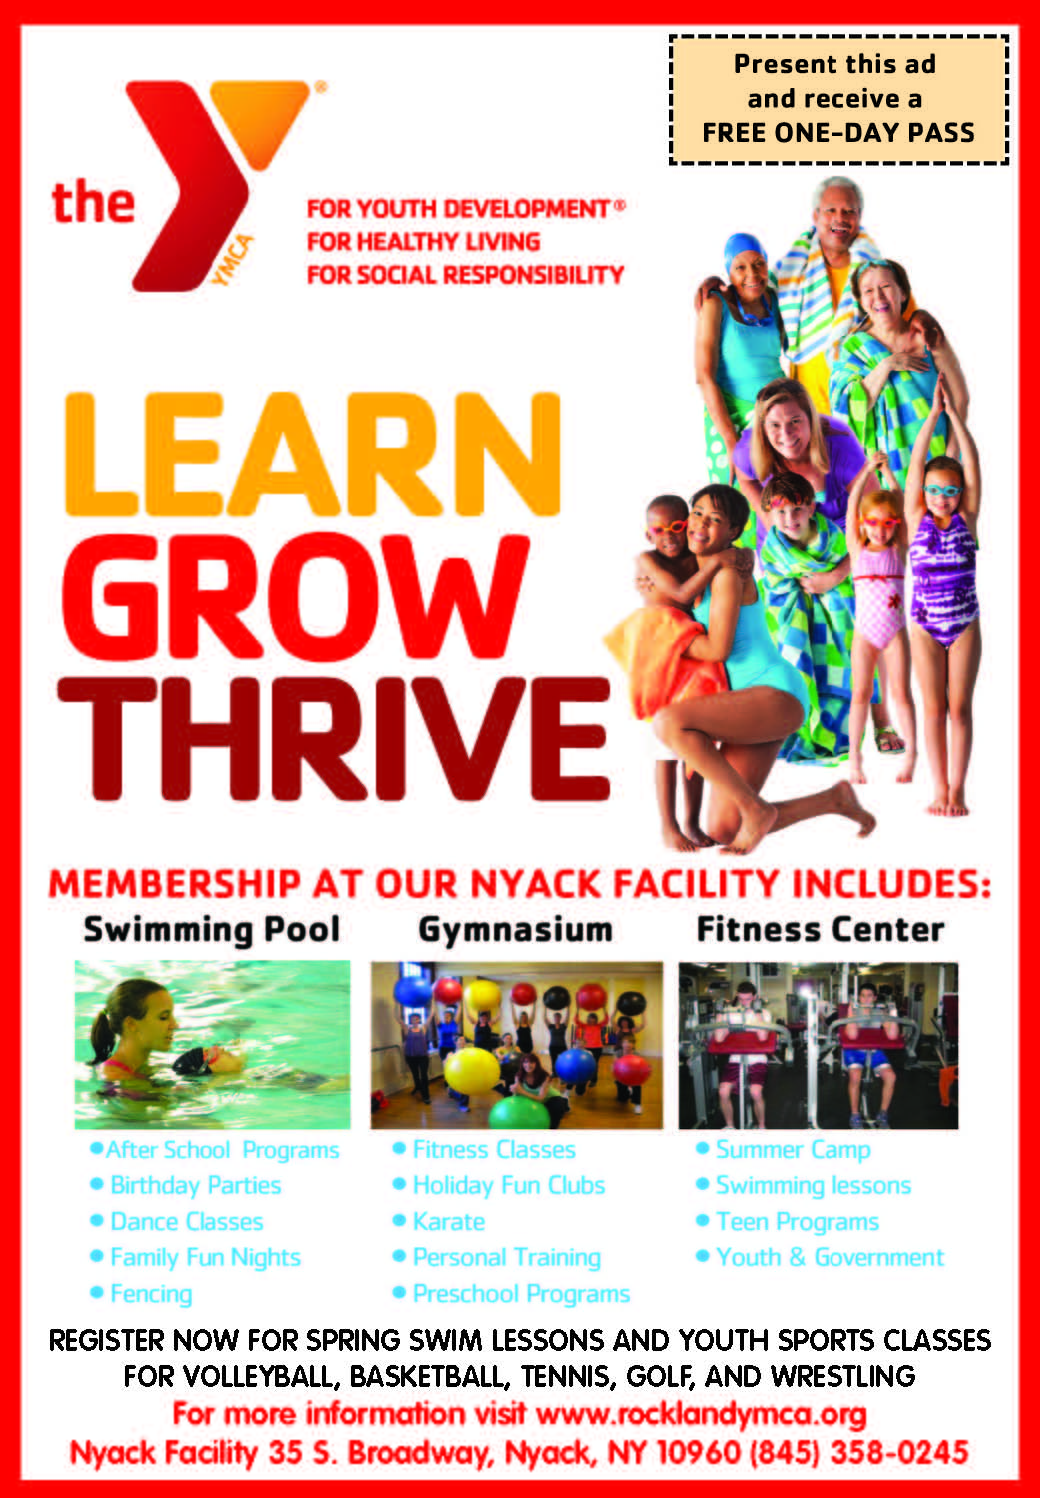 SPRING REGISTRATION DRIVE FOR ROCKLAND YMCA